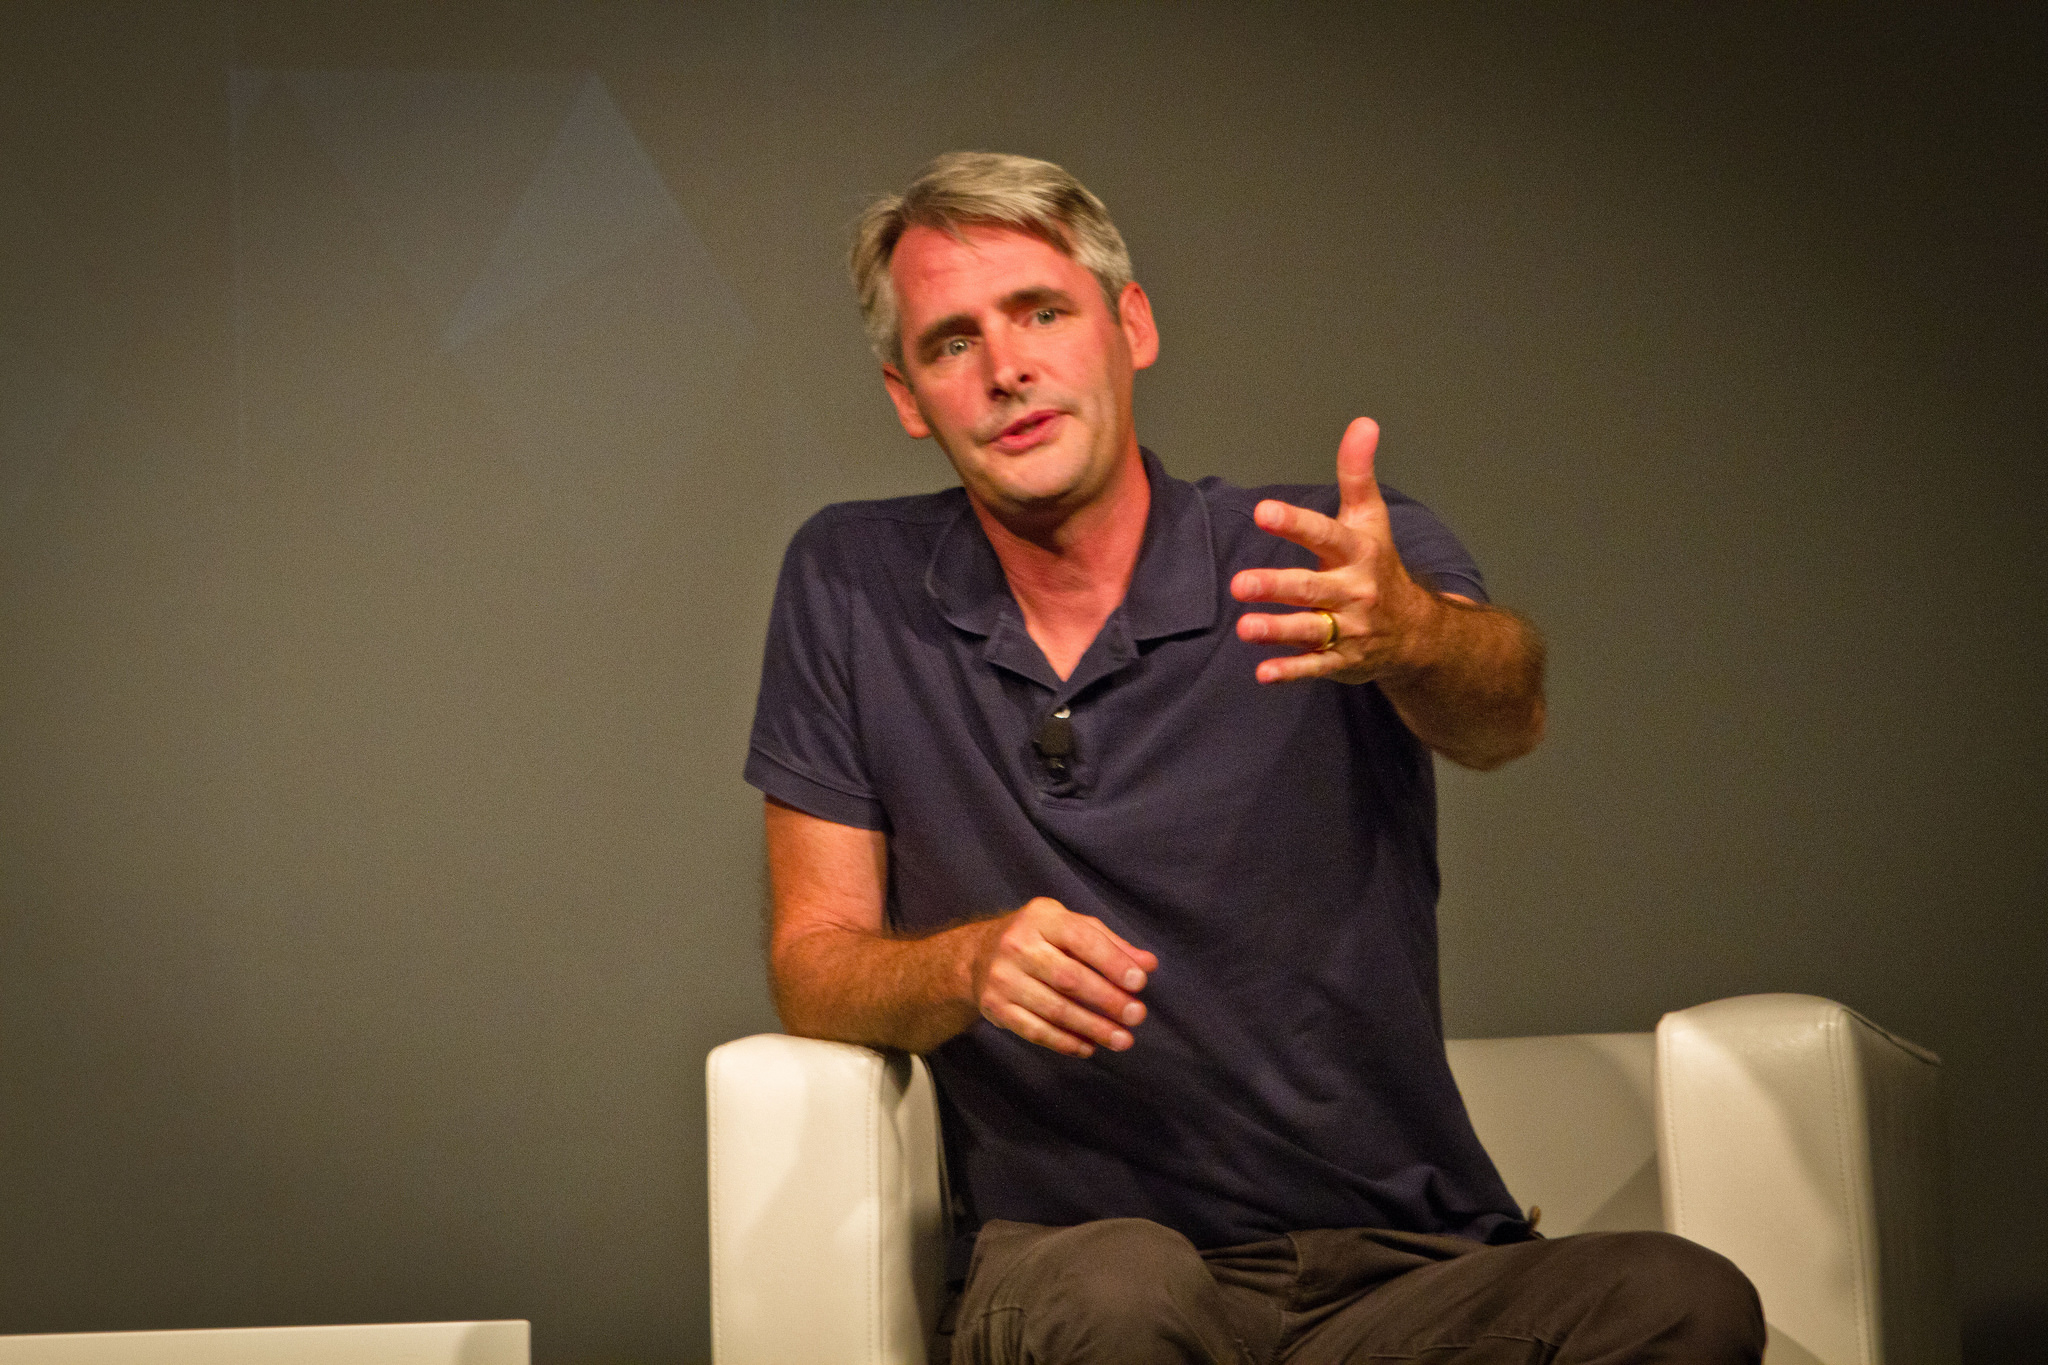 Flipboard CEO Mike McCue gestures while speaking at a ReadWriteMix event on August 13, 2014.